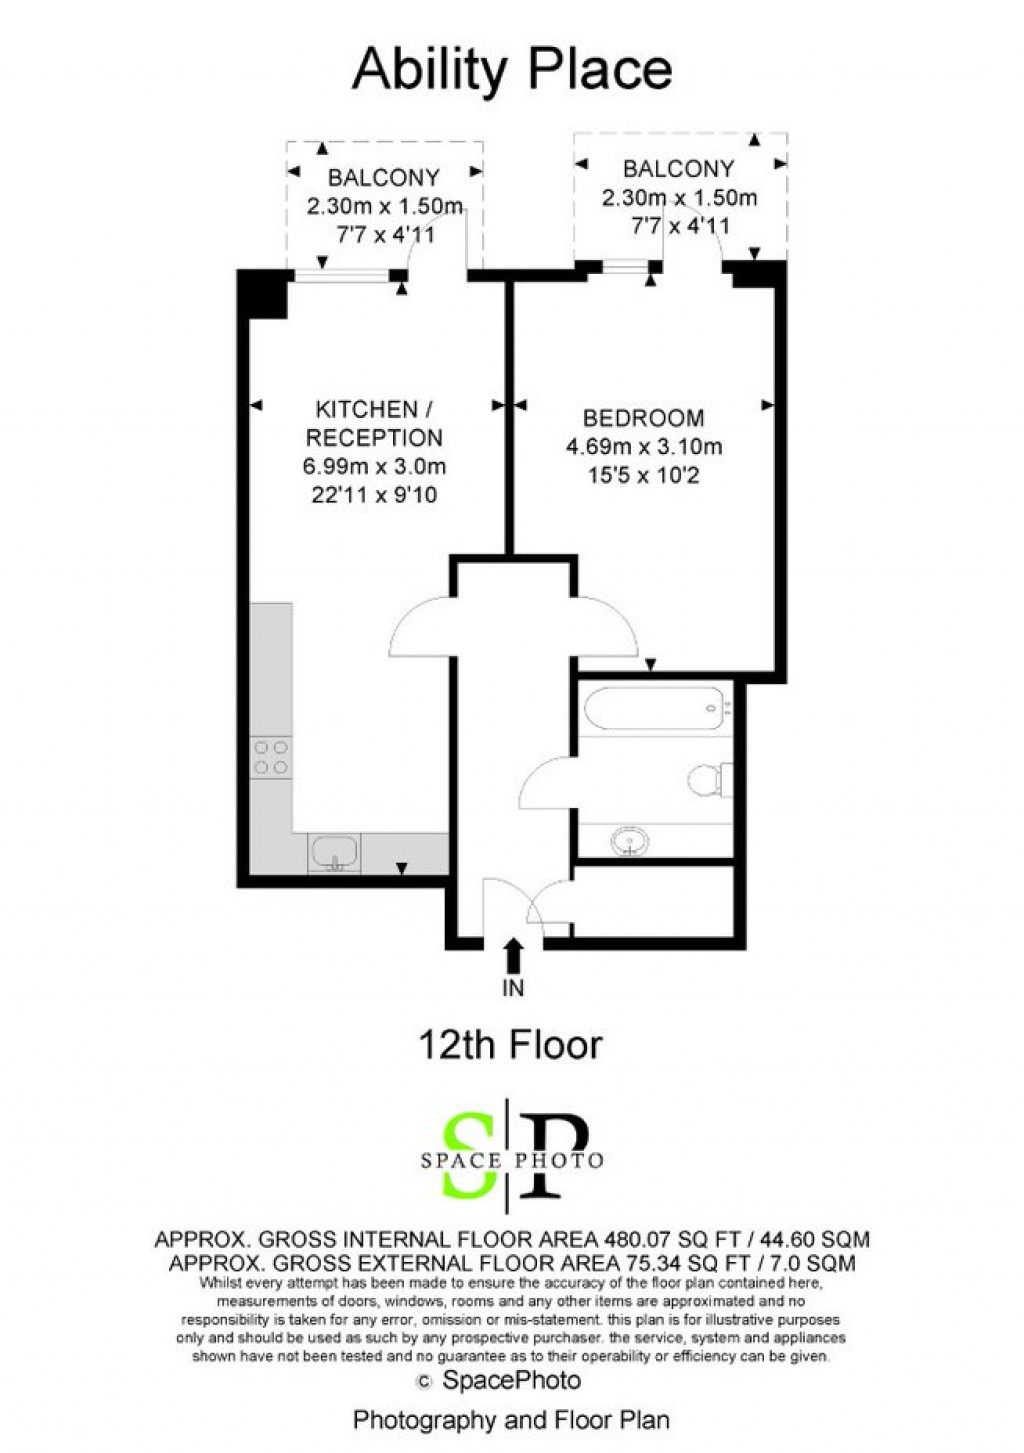 Floorplans For Ability Place 37 Millharbour London E14 9DF